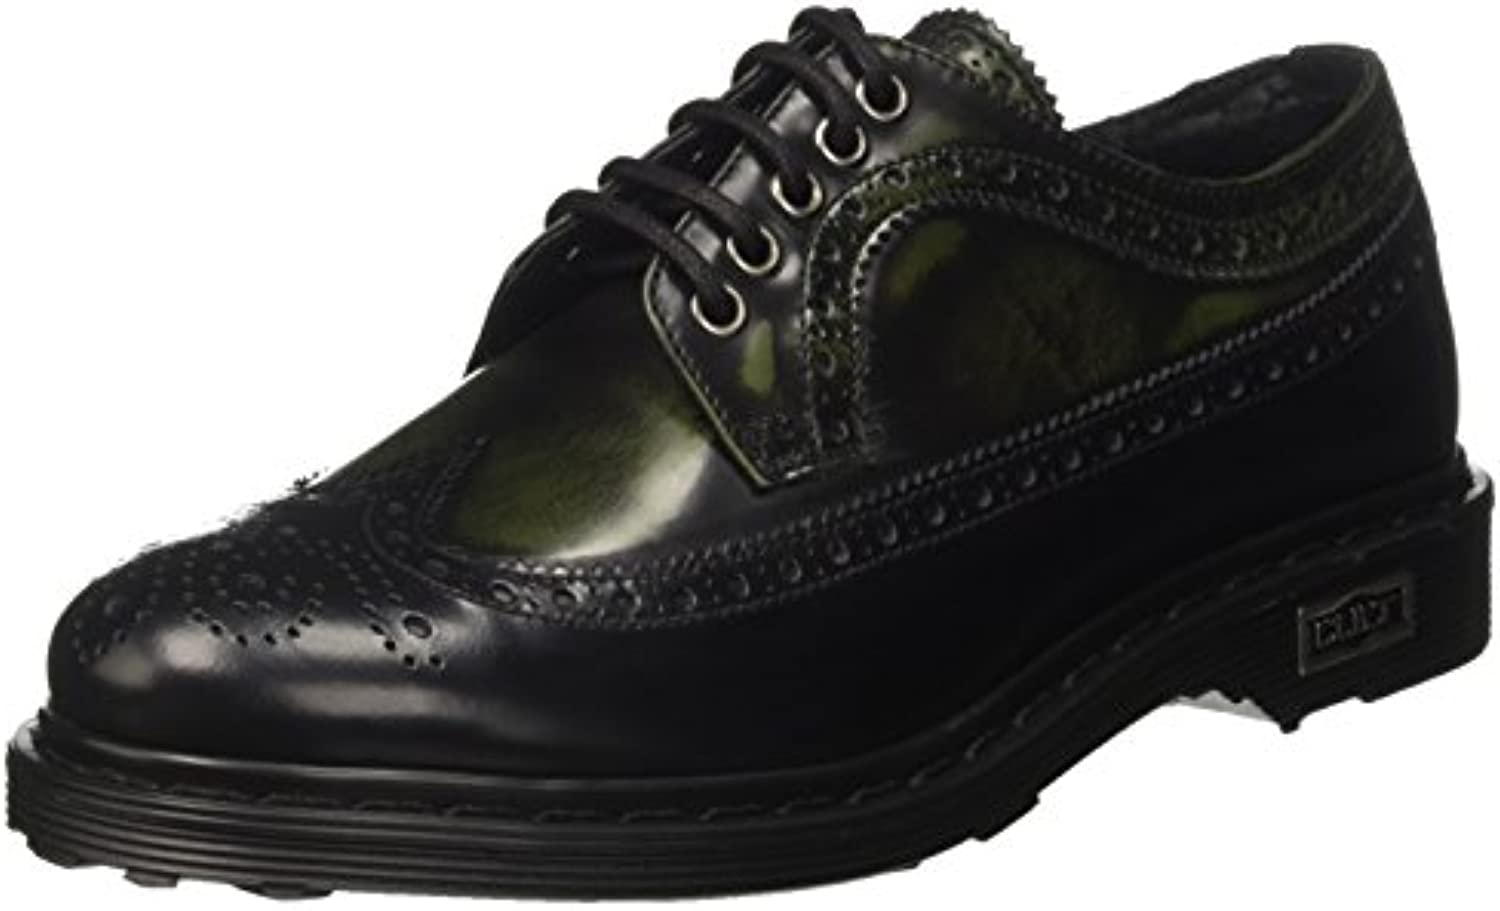 Cult Cult Cult Sabbath Low 491, Scarpe Stringate Basse Oxford Donna | Ultima Tecnologia